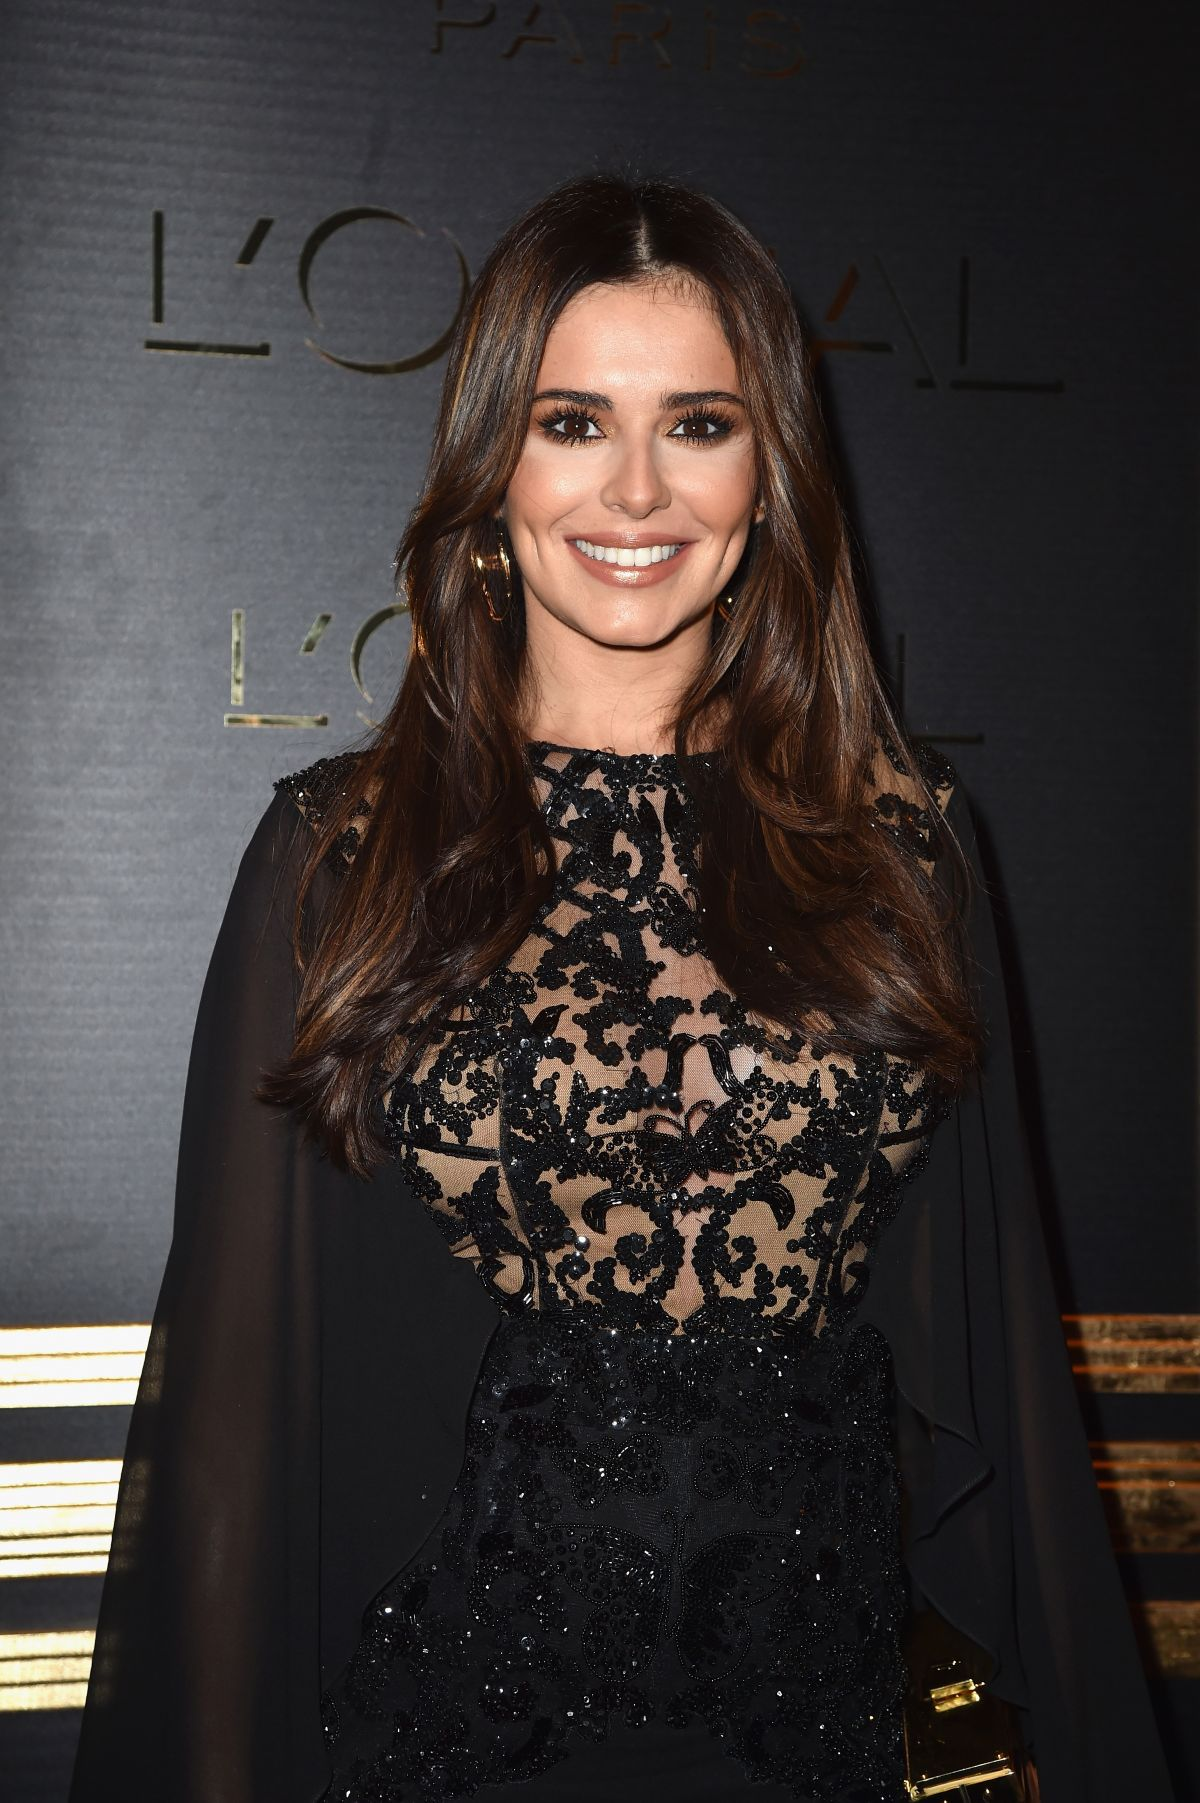 Cheryl cole hawtcelebs cheryl cole at loreal event at pars fashion week 10032016 bookmarktalkfo Images